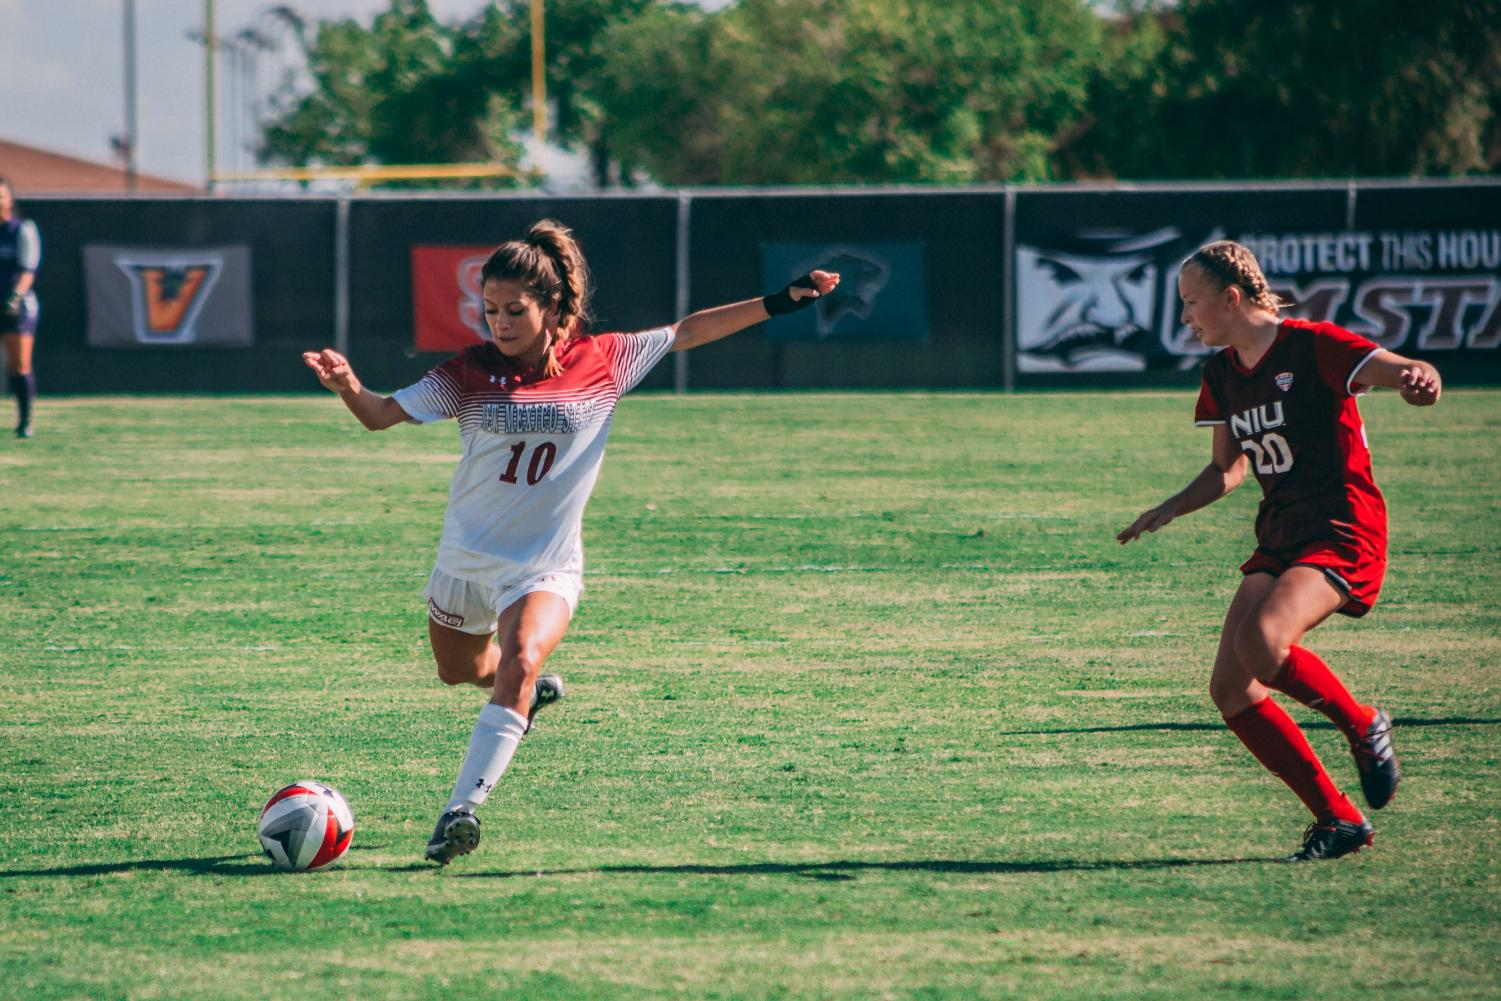 Aileen Galicia's 89' strike to send the game into extra time wasn't enough to pull a result for the Aggies, who drop their sixth game in seven outings.